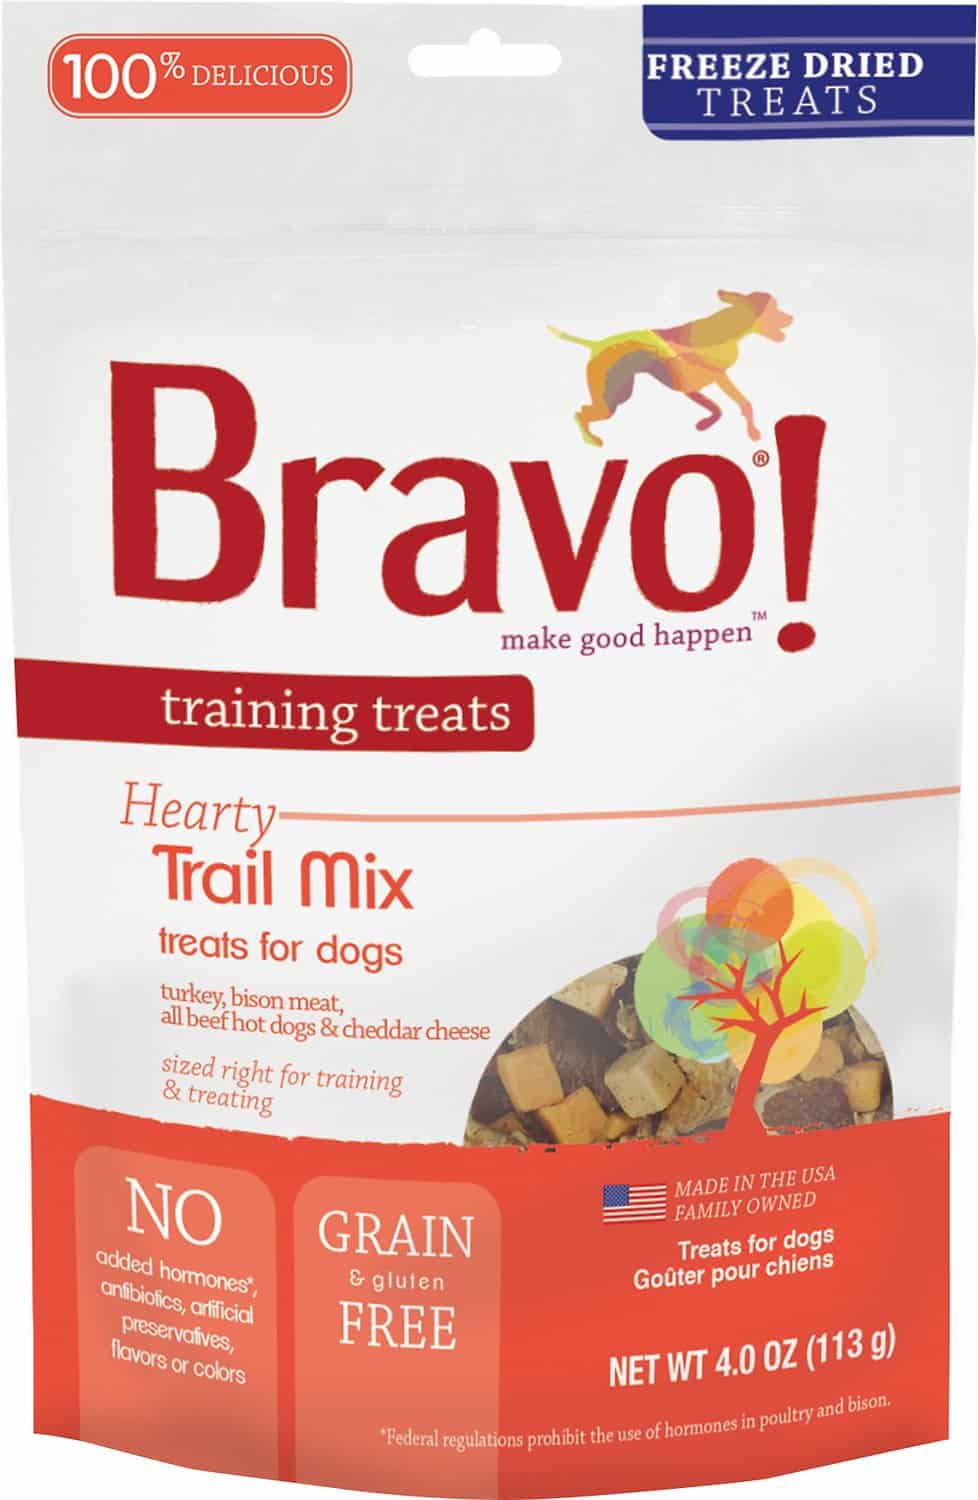 Bravo Dog Food Review 2021: Best Raw Pet Food? 19